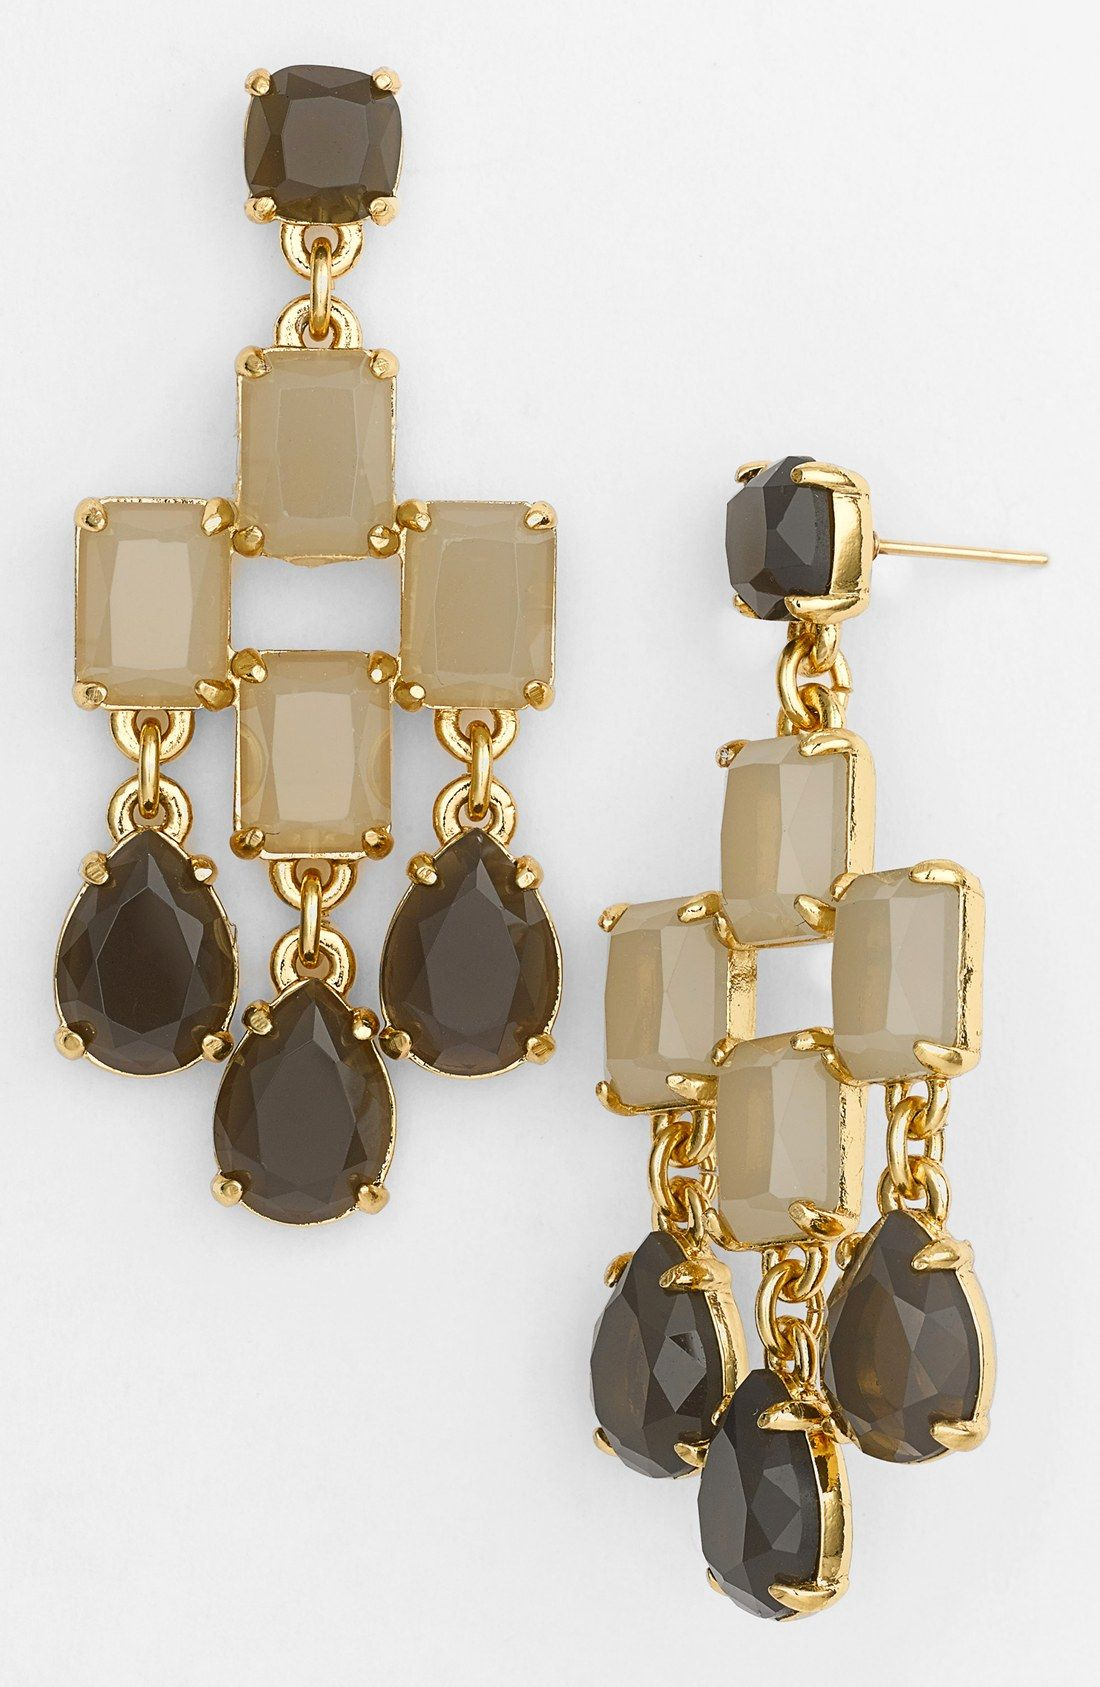 Fun neutral colored chandelier earrings to wear to the office 9 fun neutral colored chandelier earrings to wear to the office arubaitofo Images